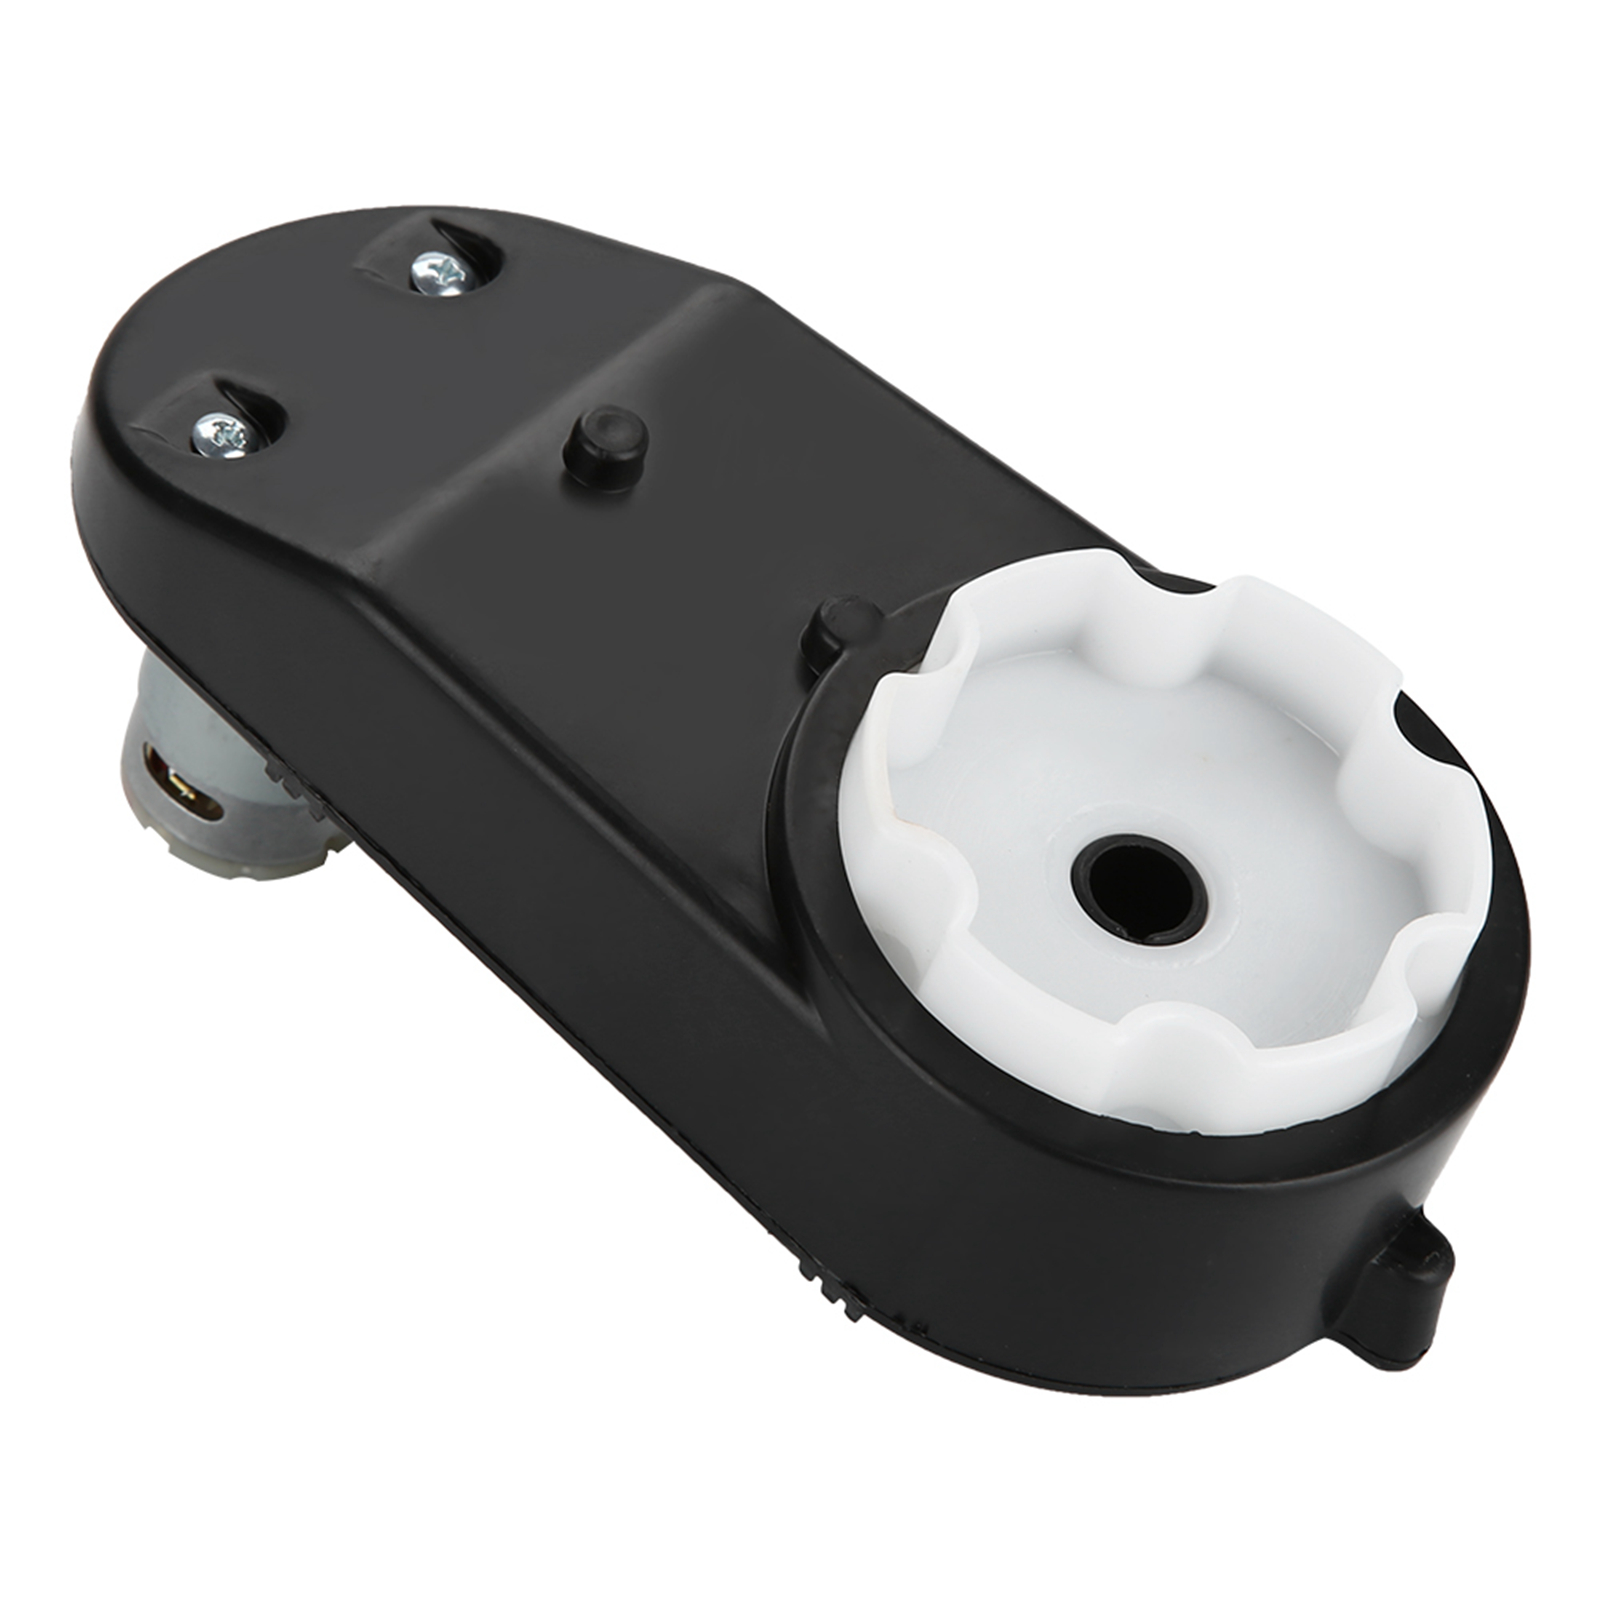 12V-Electric-Motor-Gear-Box-8000-30000RPM-For-Kids-Ride-On-Car-Bike-Toy-Parts thumbnail 24